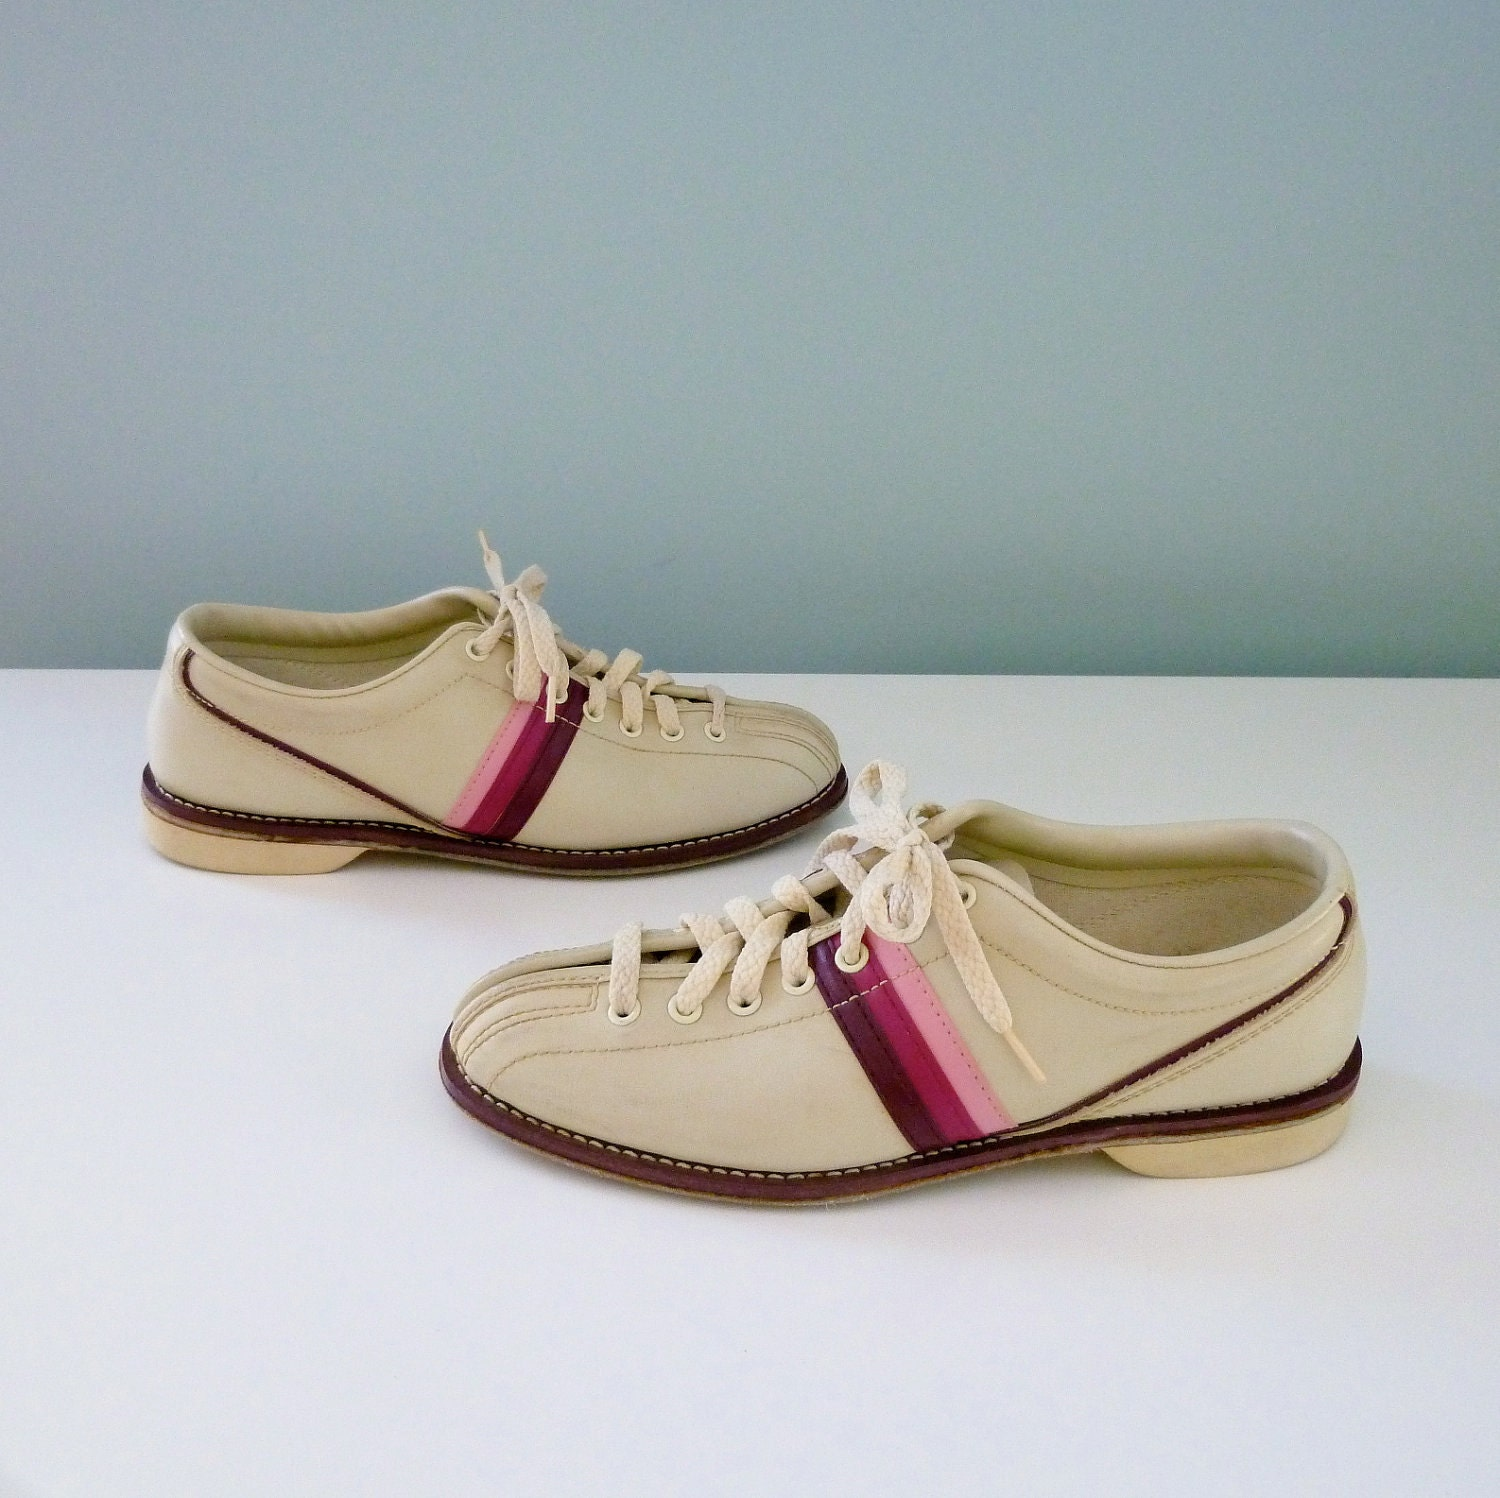 Cute Vintage Bowling Shoes 70s 80s Cream White Pink Stripe